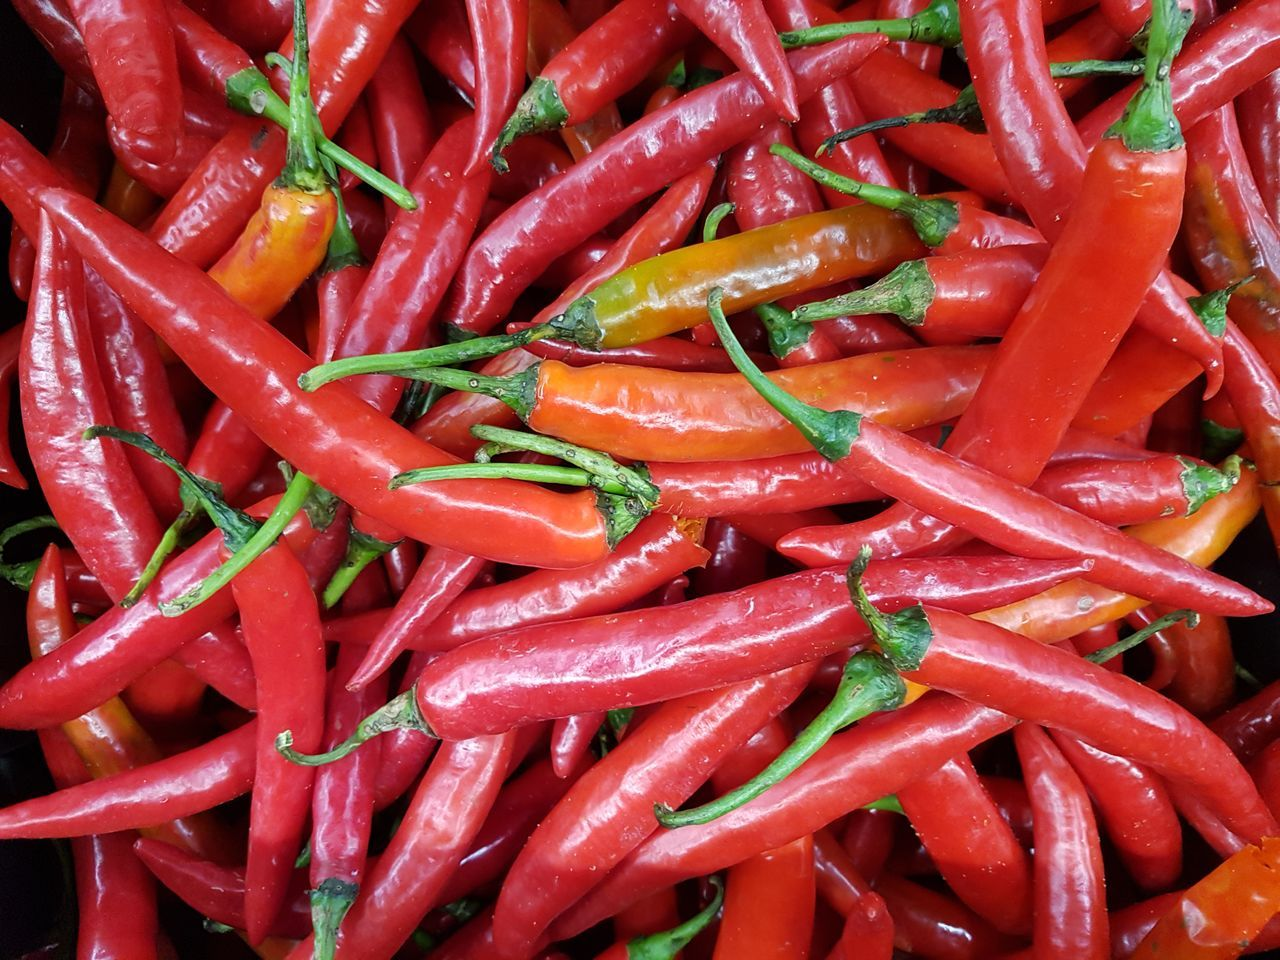 Red Chillies Chilly Agronomy Agriculture Agricultural Plants Full Frame Food Freshness Vegetable Healthy Eating Close-up Still Life Greens